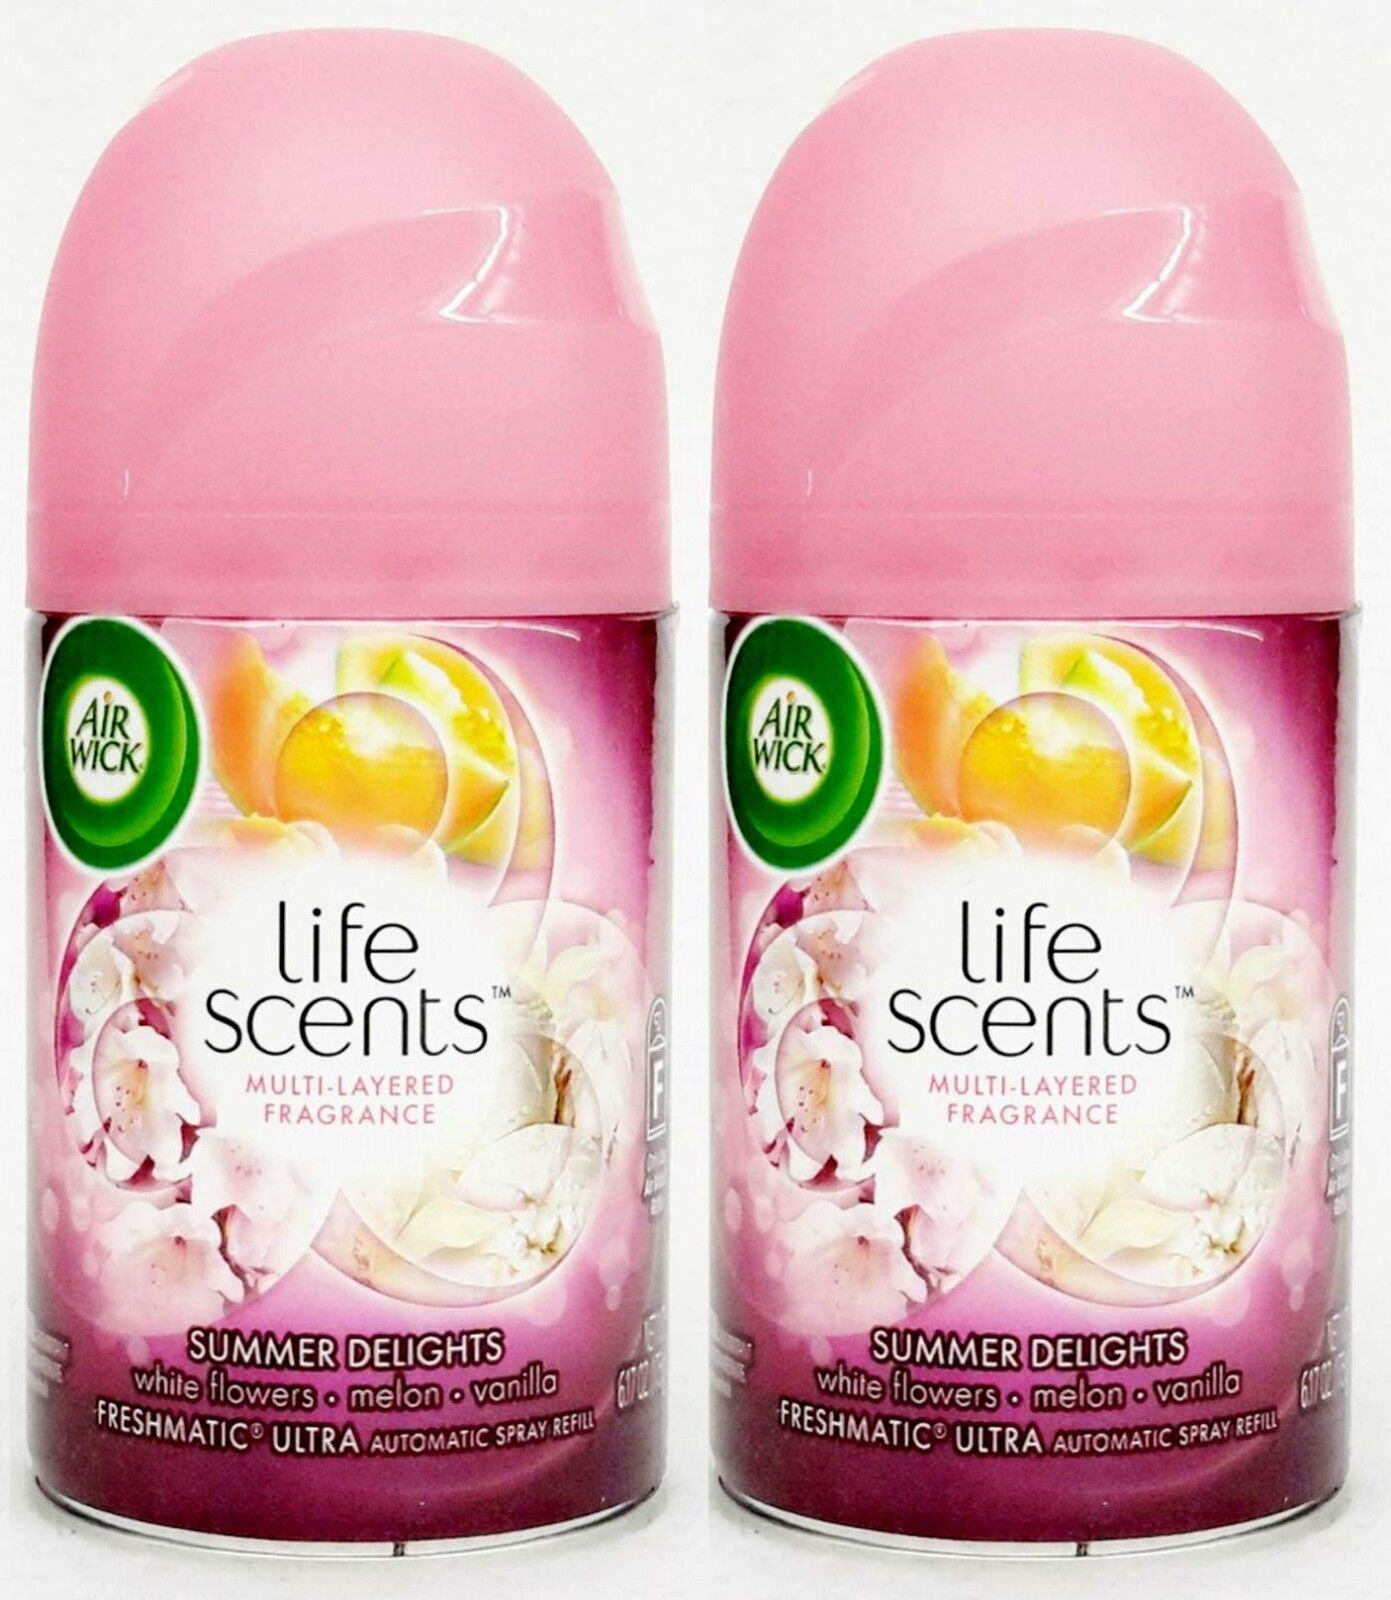 Air Wick Life Scents Automatic Air Freshener Spray, Multi-La